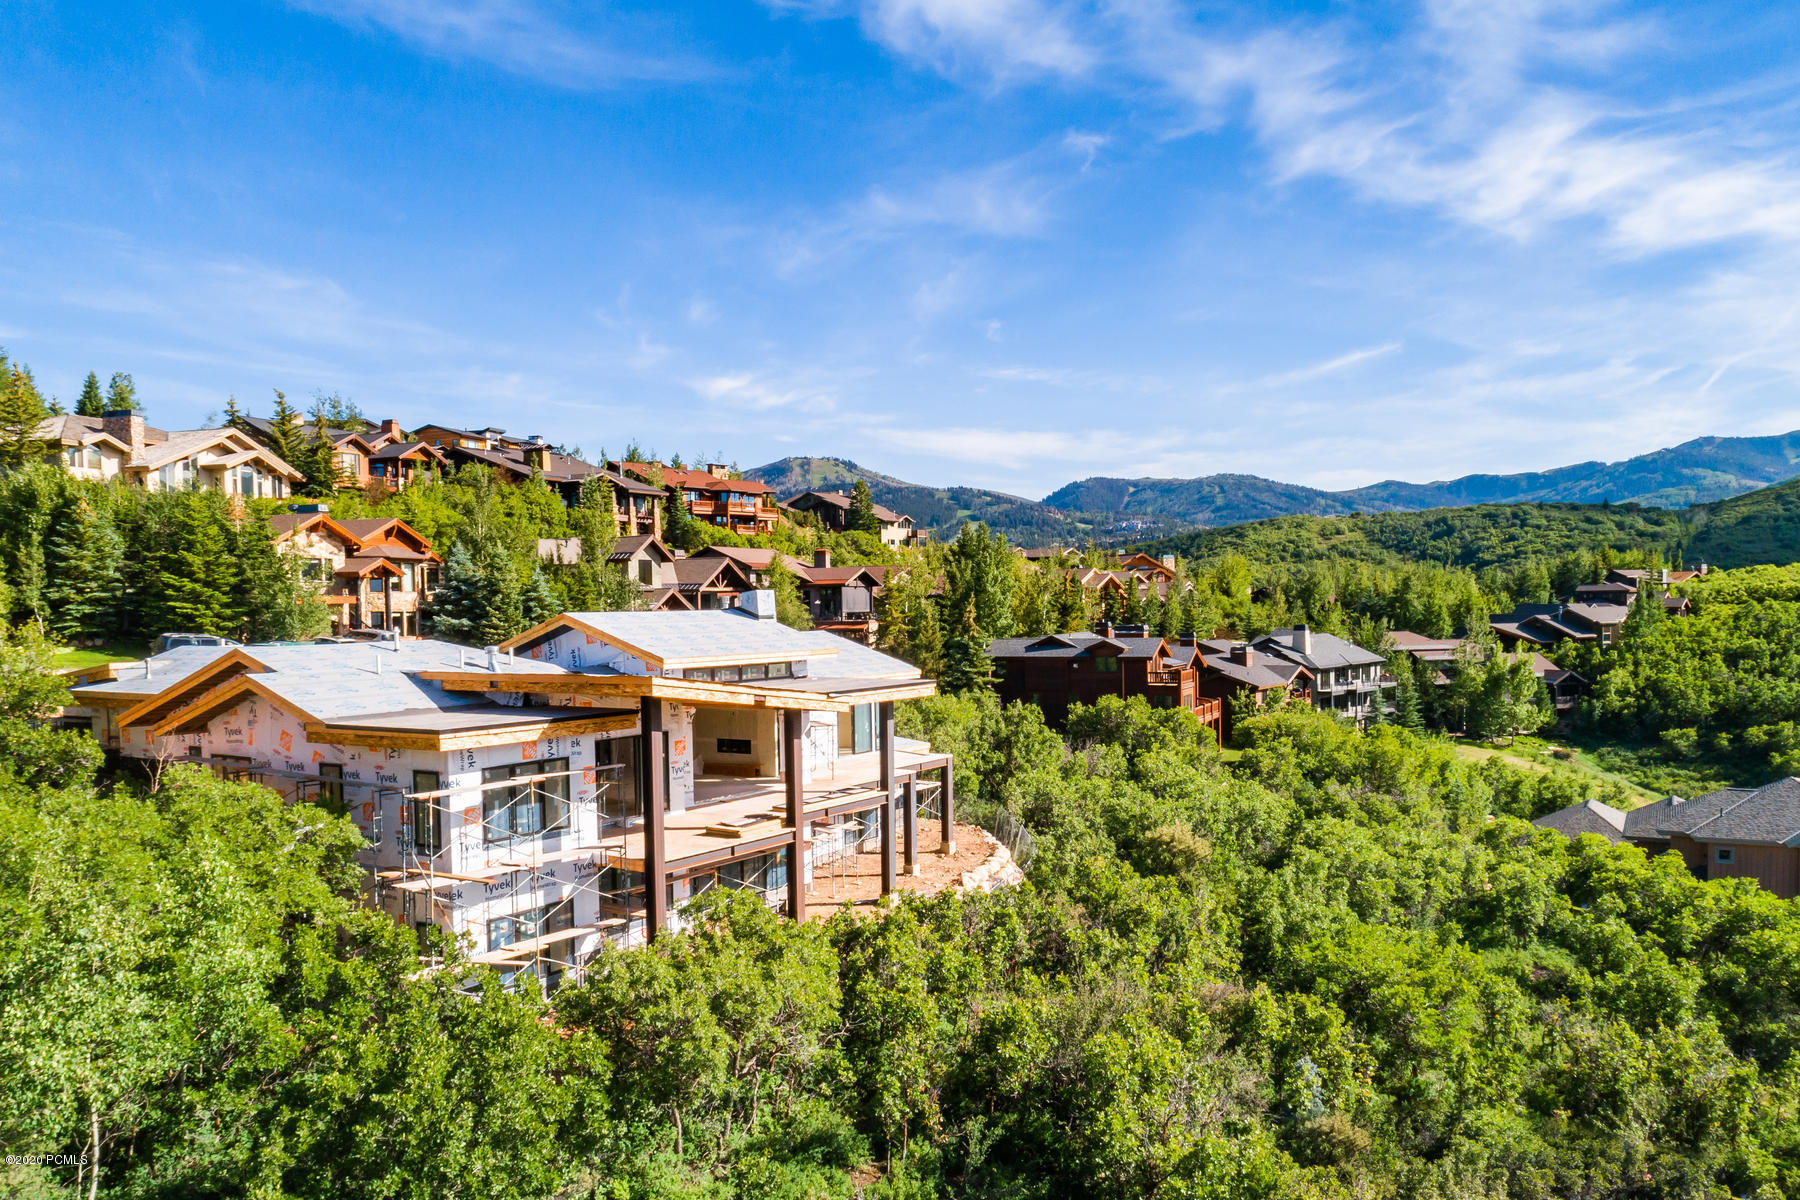 3635 Sun Ridge Drive, Park City, Utah 84098, 6 Bedrooms Bedrooms, ,7 BathroomsBathrooms,Single Family,For Sale,Sun Ridge,20190109112430415765000000